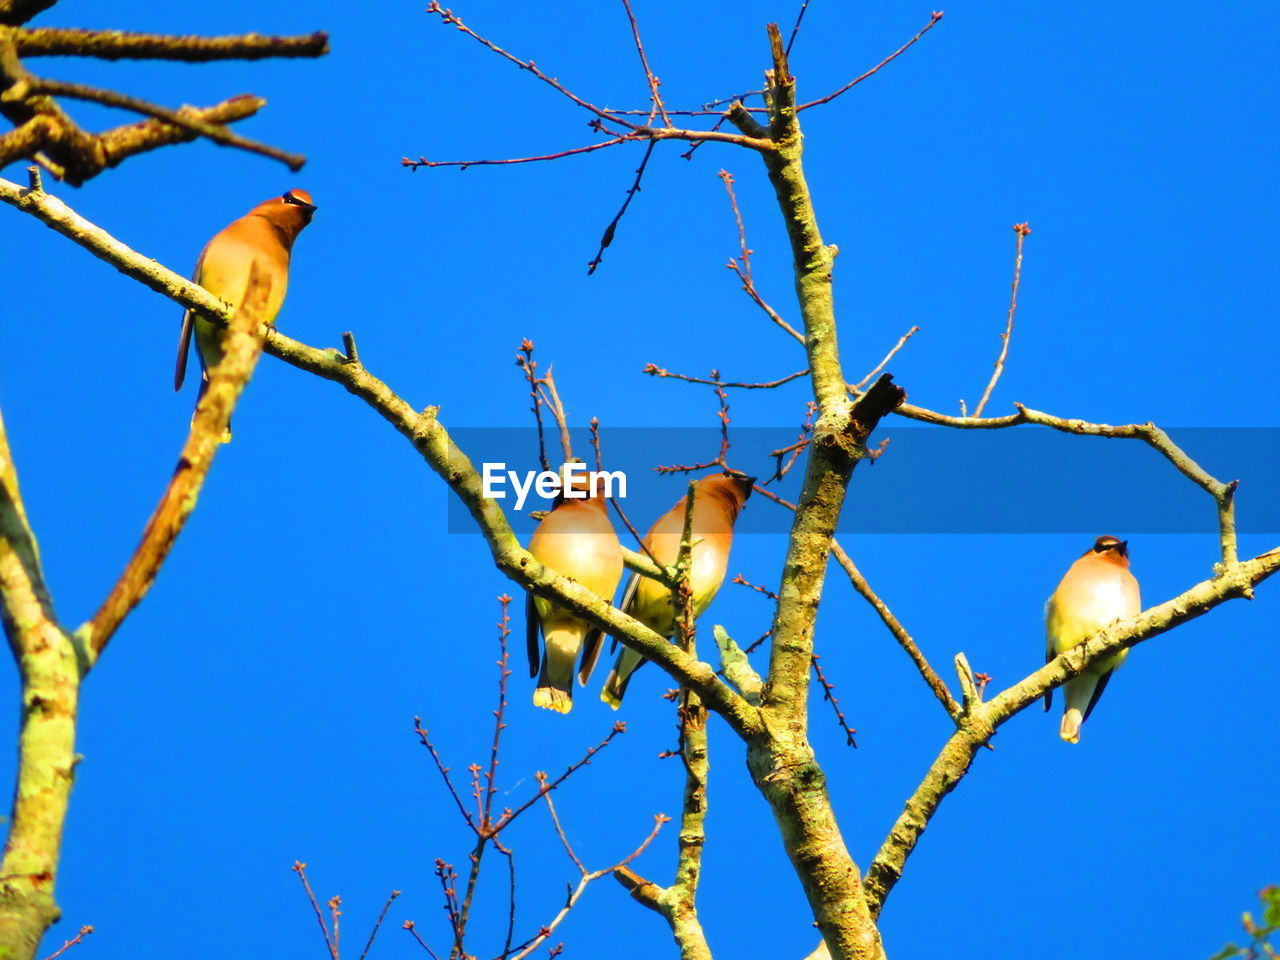 tree, sky, blue, low angle view, branch, clear sky, plant, no people, nature, bird, day, perching, beauty in nature, bare tree, outdoors, vertebrate, tranquility, animals in the wild, animal wildlife, growth